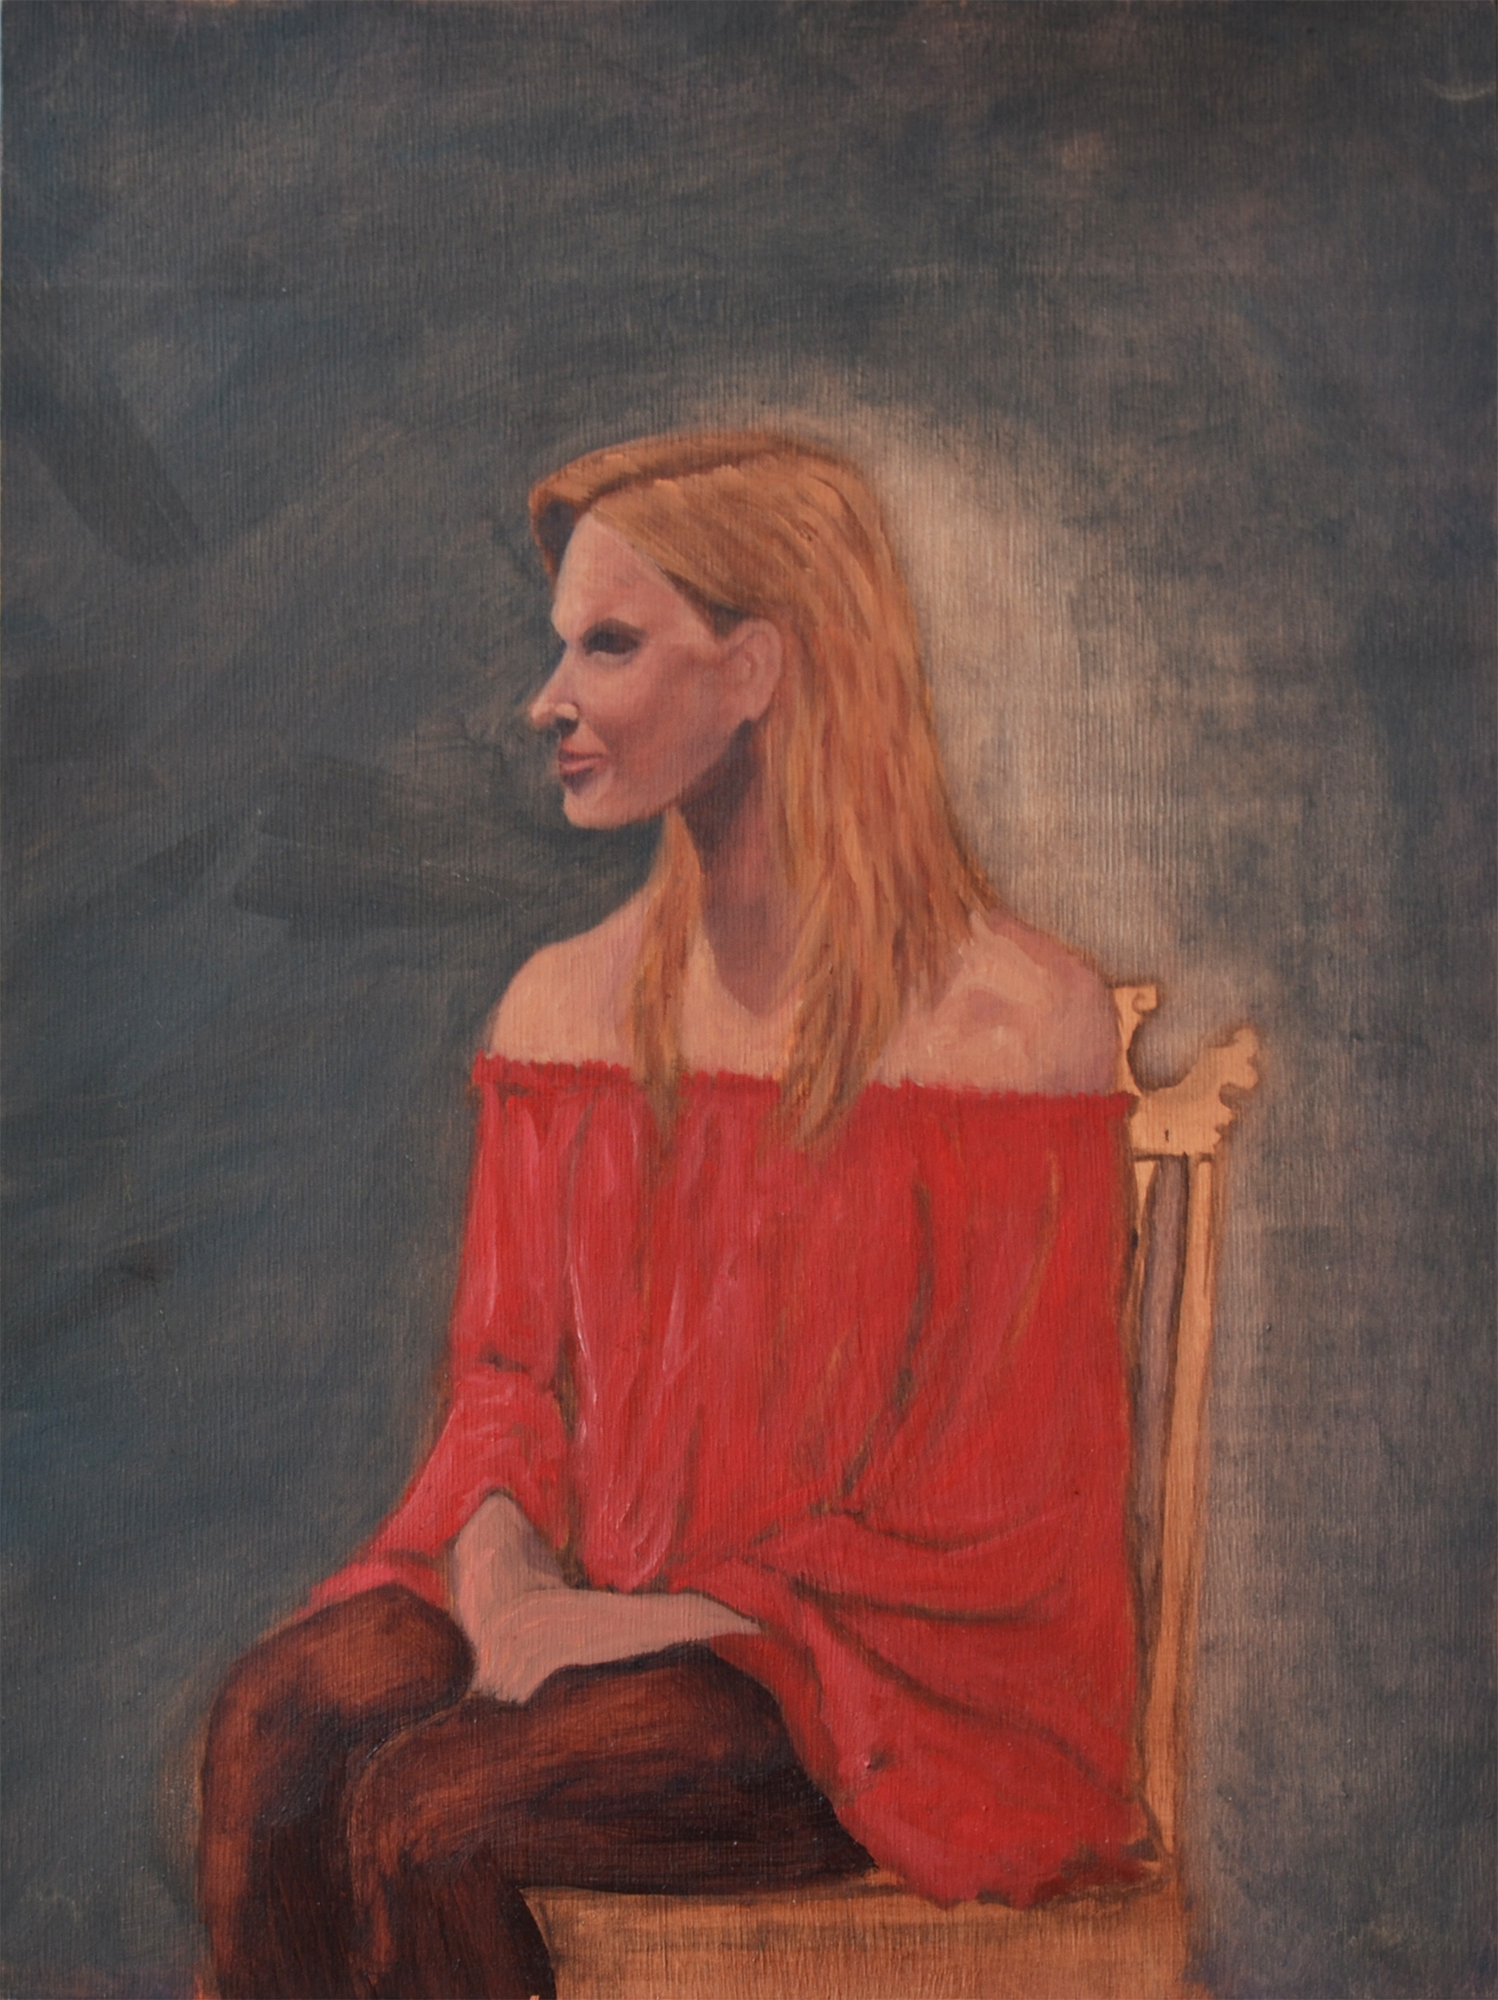 OilFigurePaintingGirl1lightened.jpg